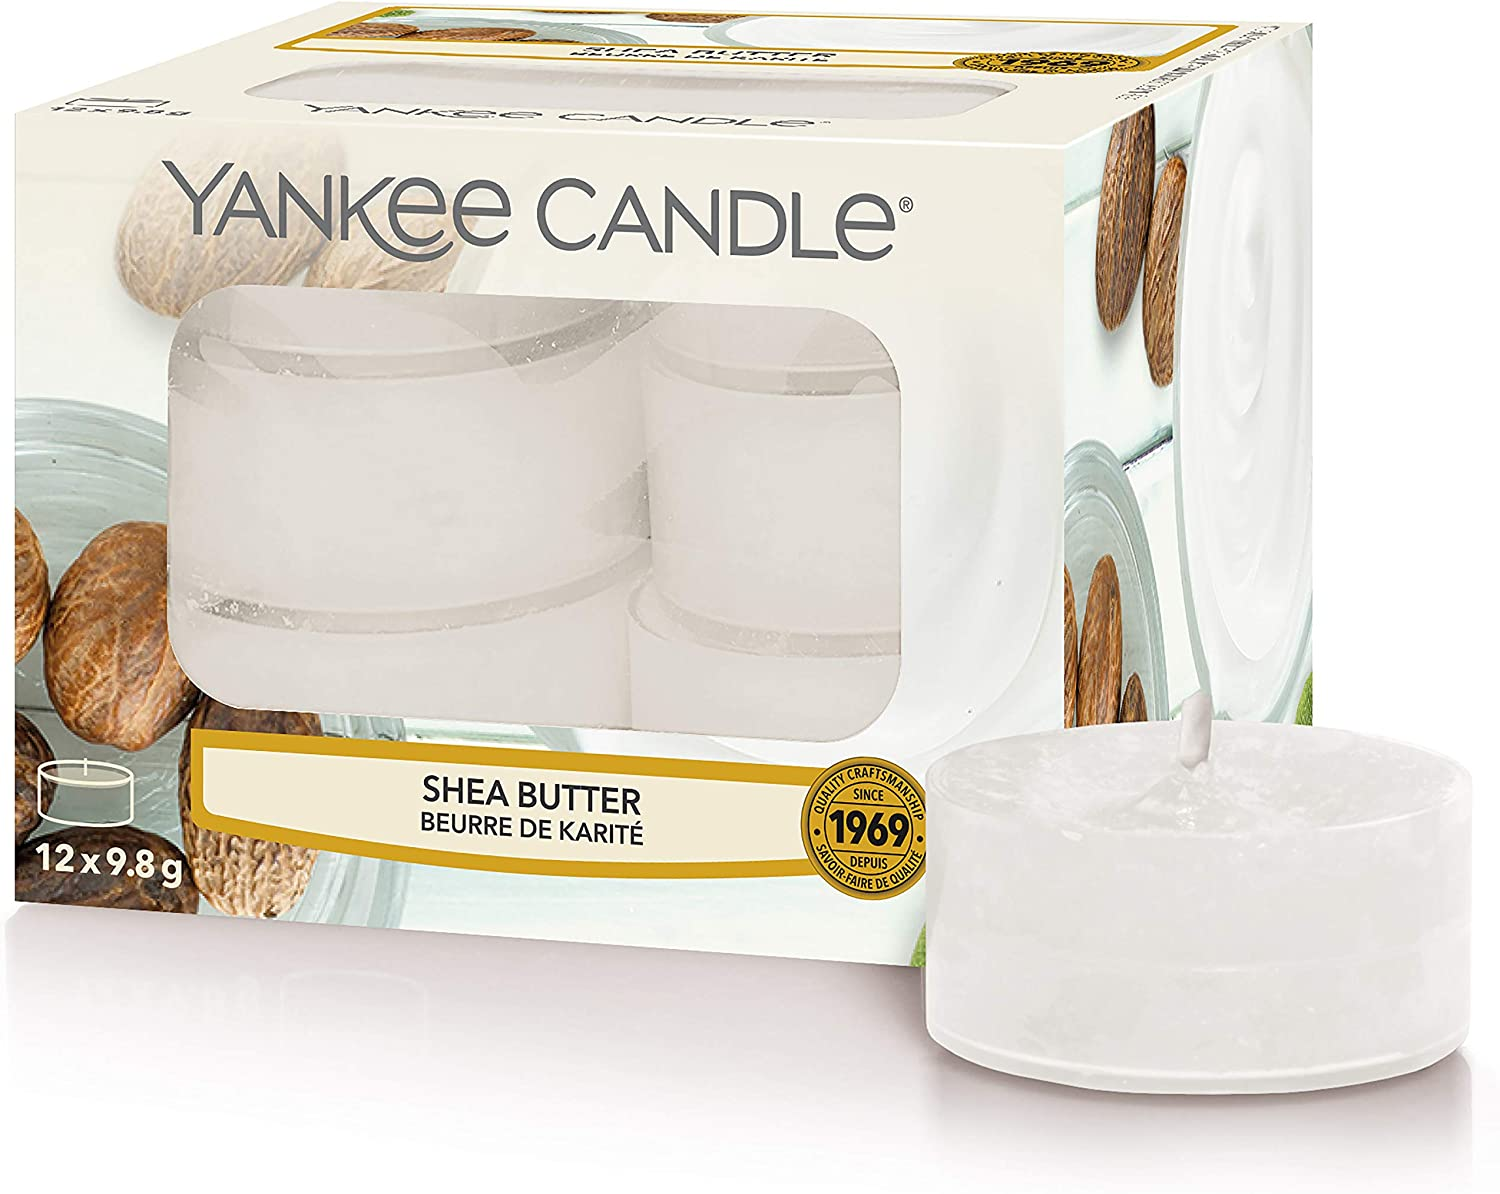 12er-Packung Yankee Candle Duft-Teelichte Angels Wings